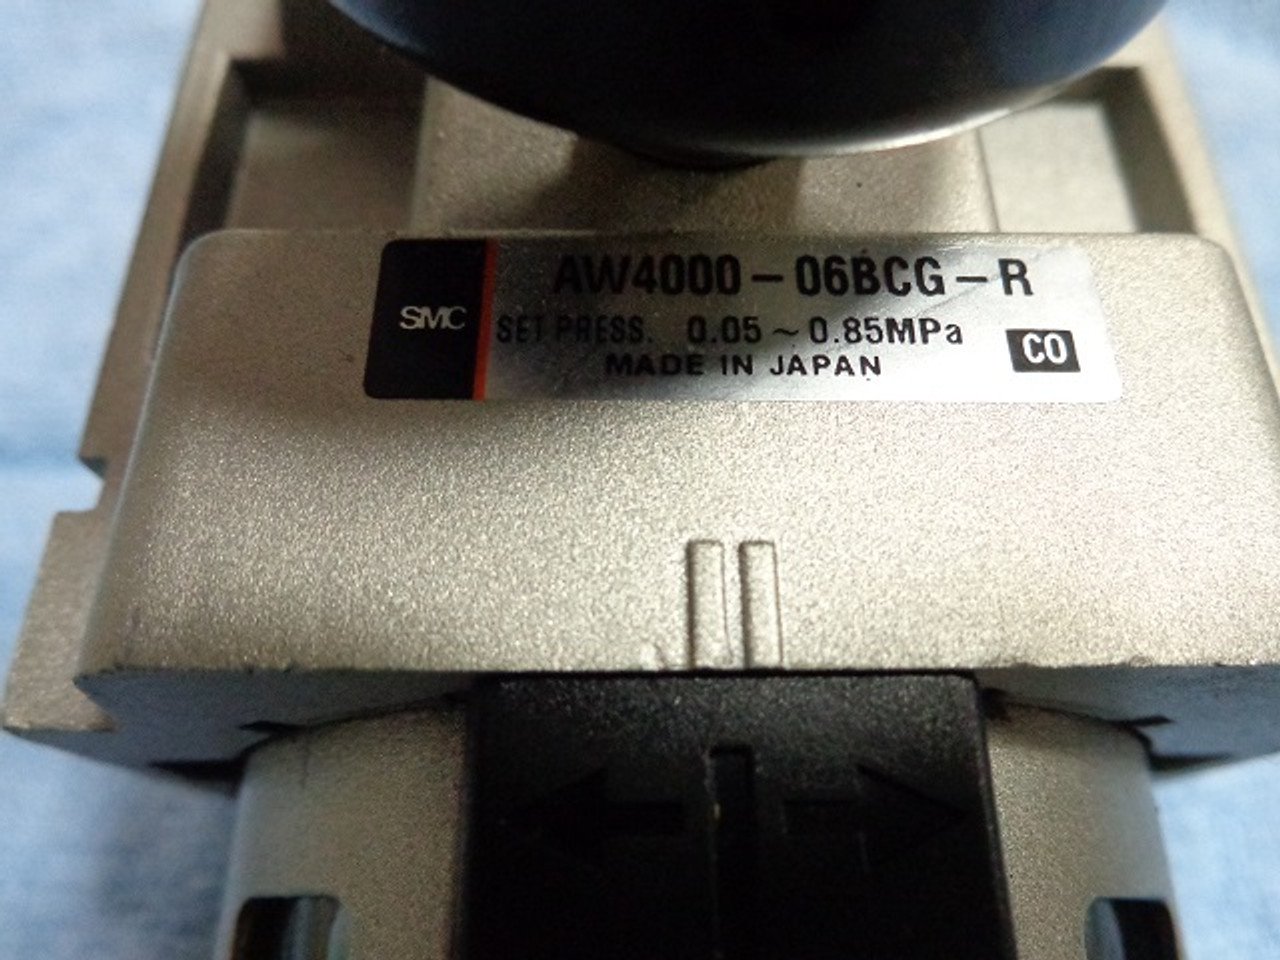 SMC AW4000-06BCG-R Filter Regulator2